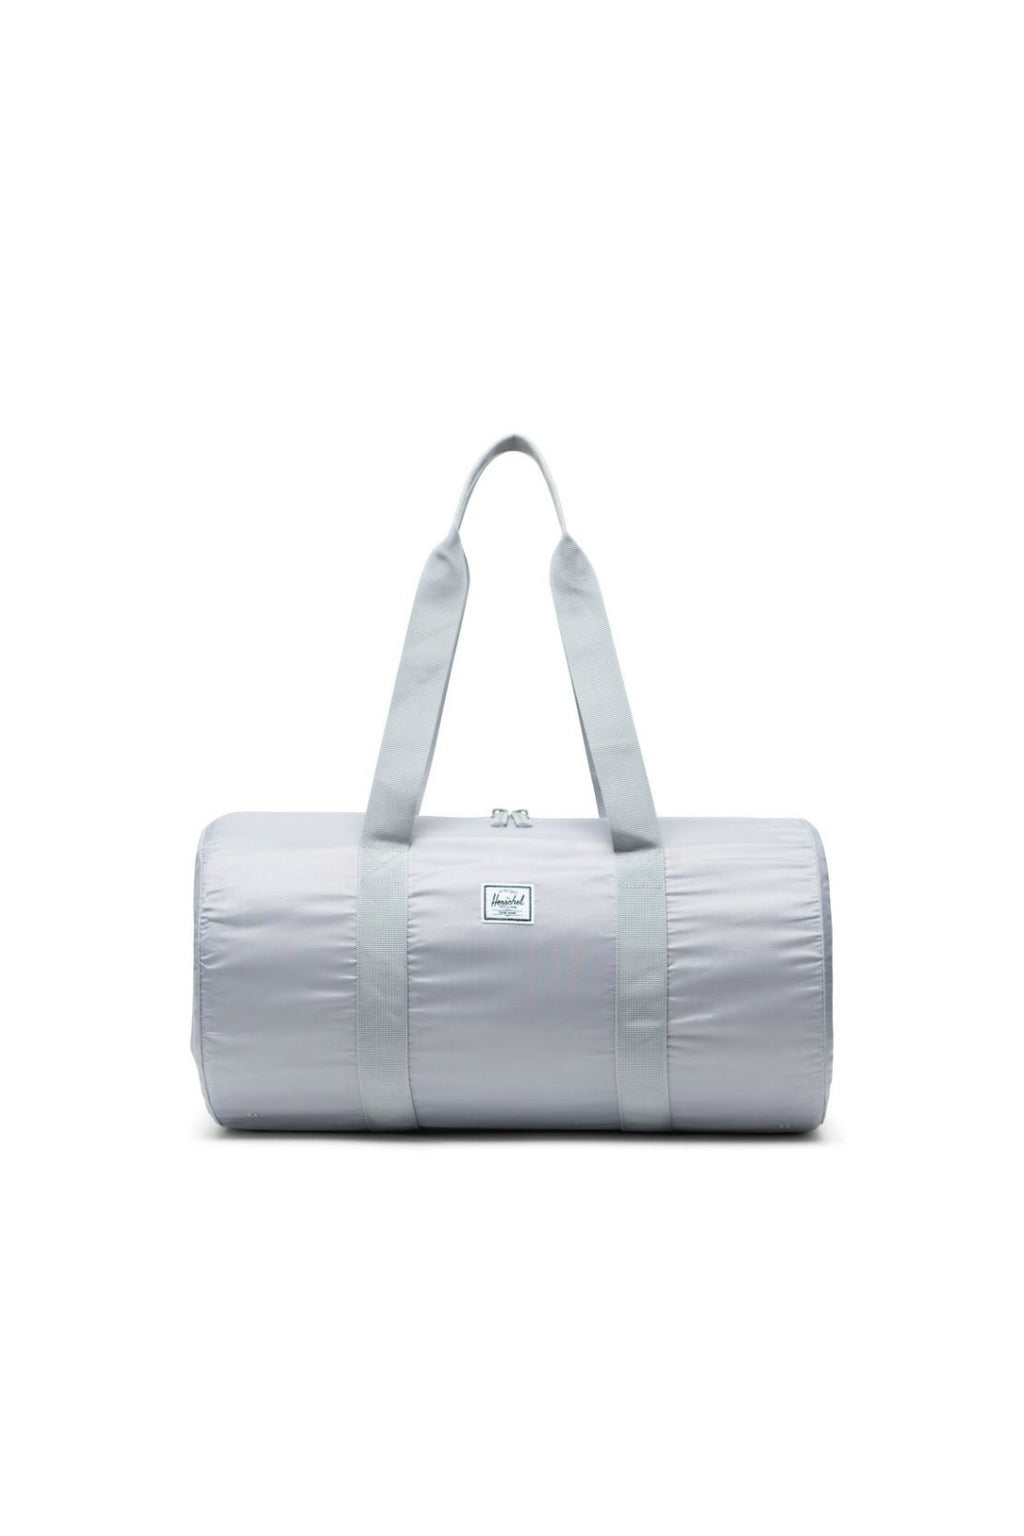 Herschel Supply Co. Packable Duffle in High Rise